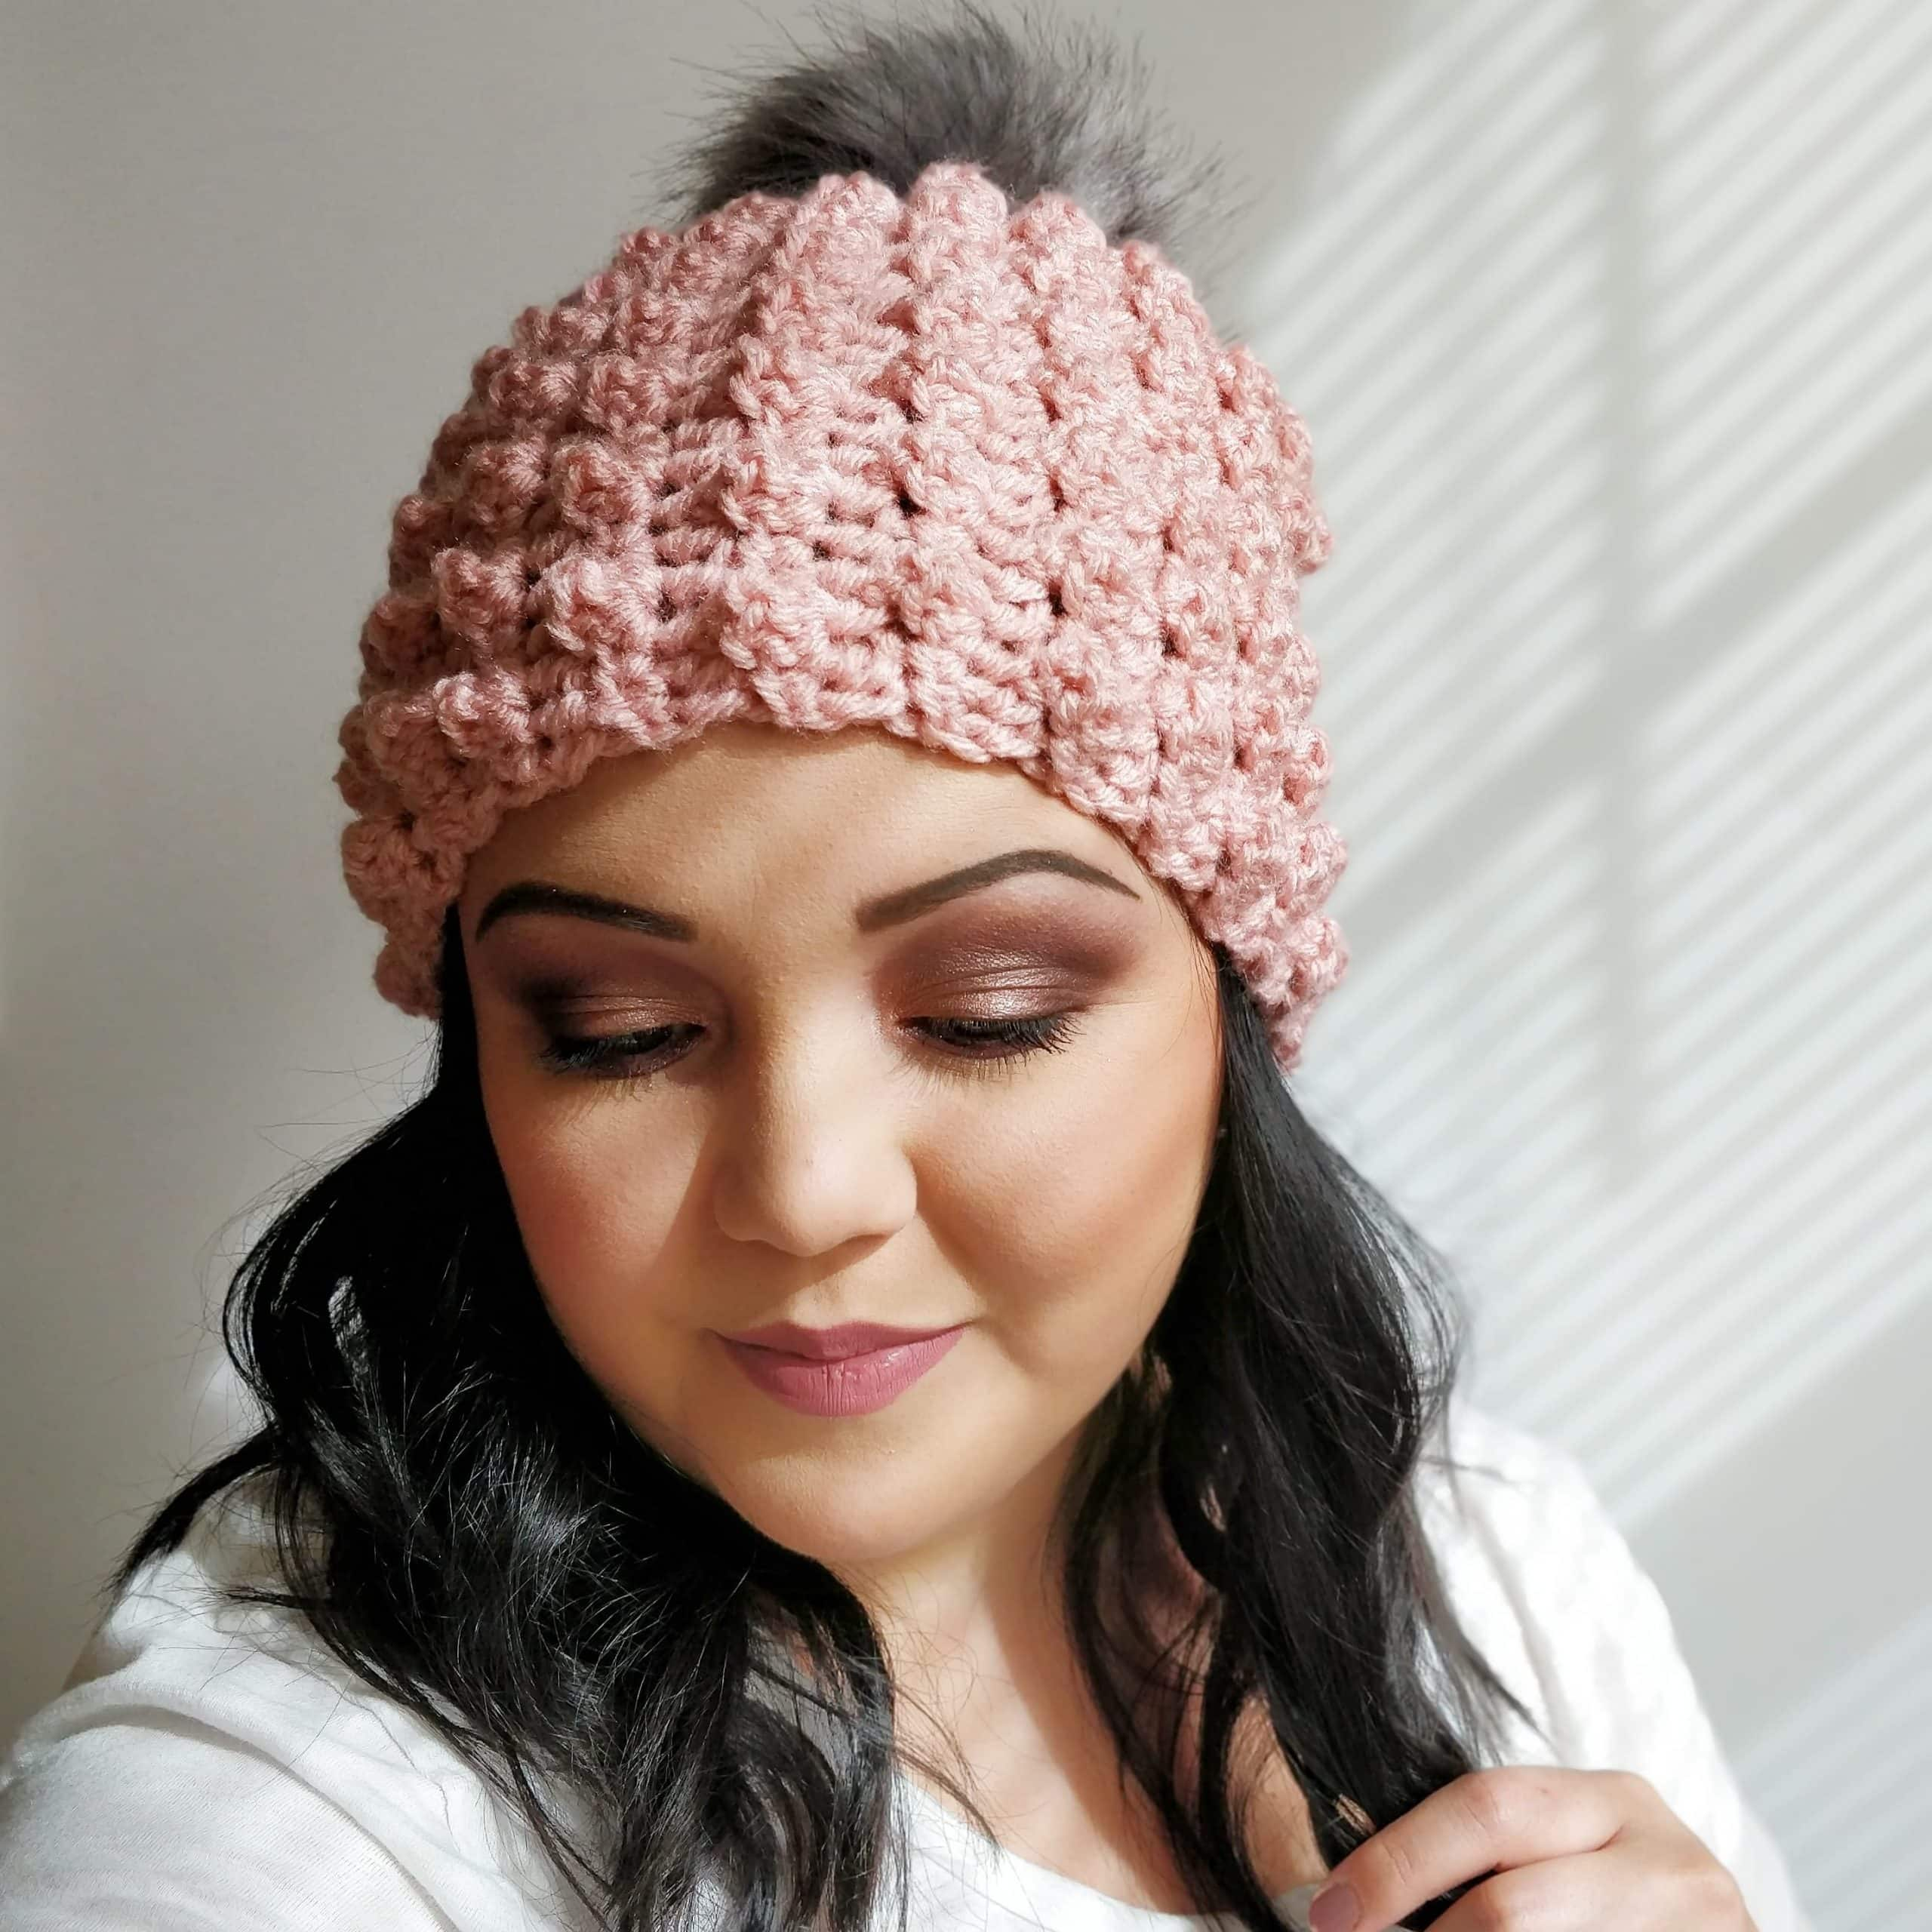 Woman wearing a handmade crochet pink beanie with gray faux fur pom pom.